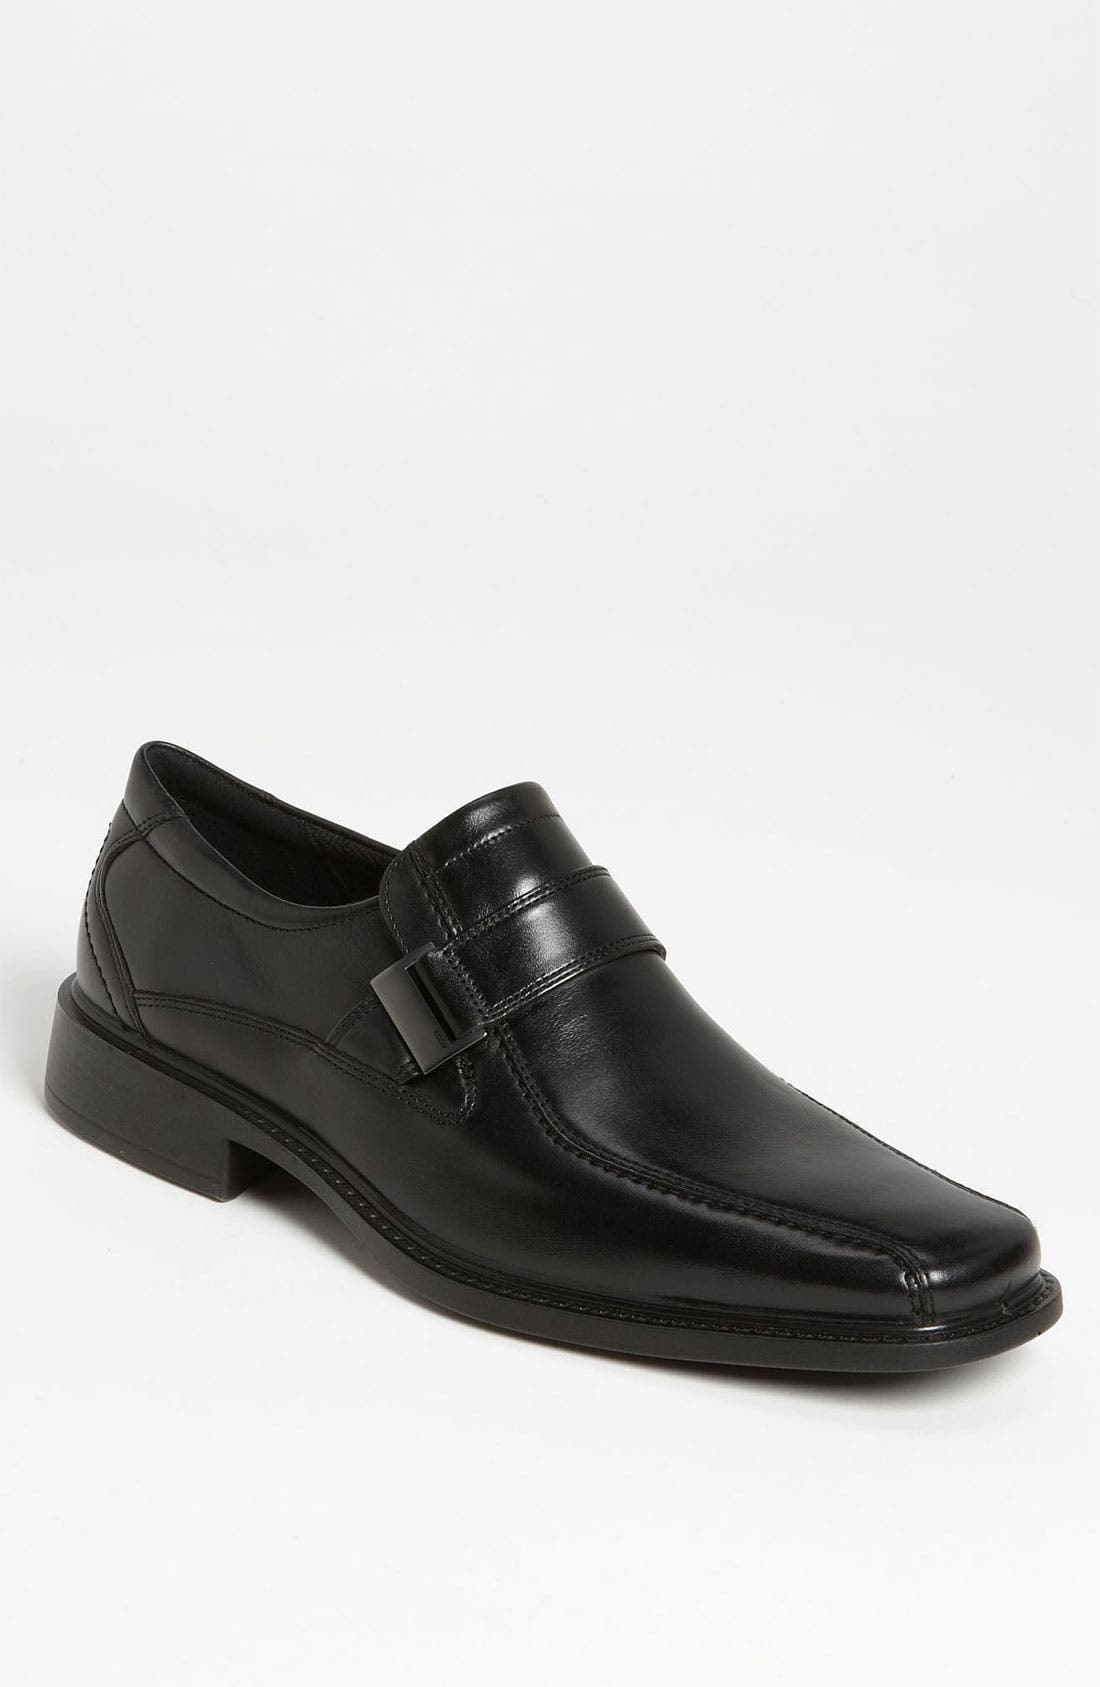 Main Image - ECCO 'New Jersey' Venetian Loafer